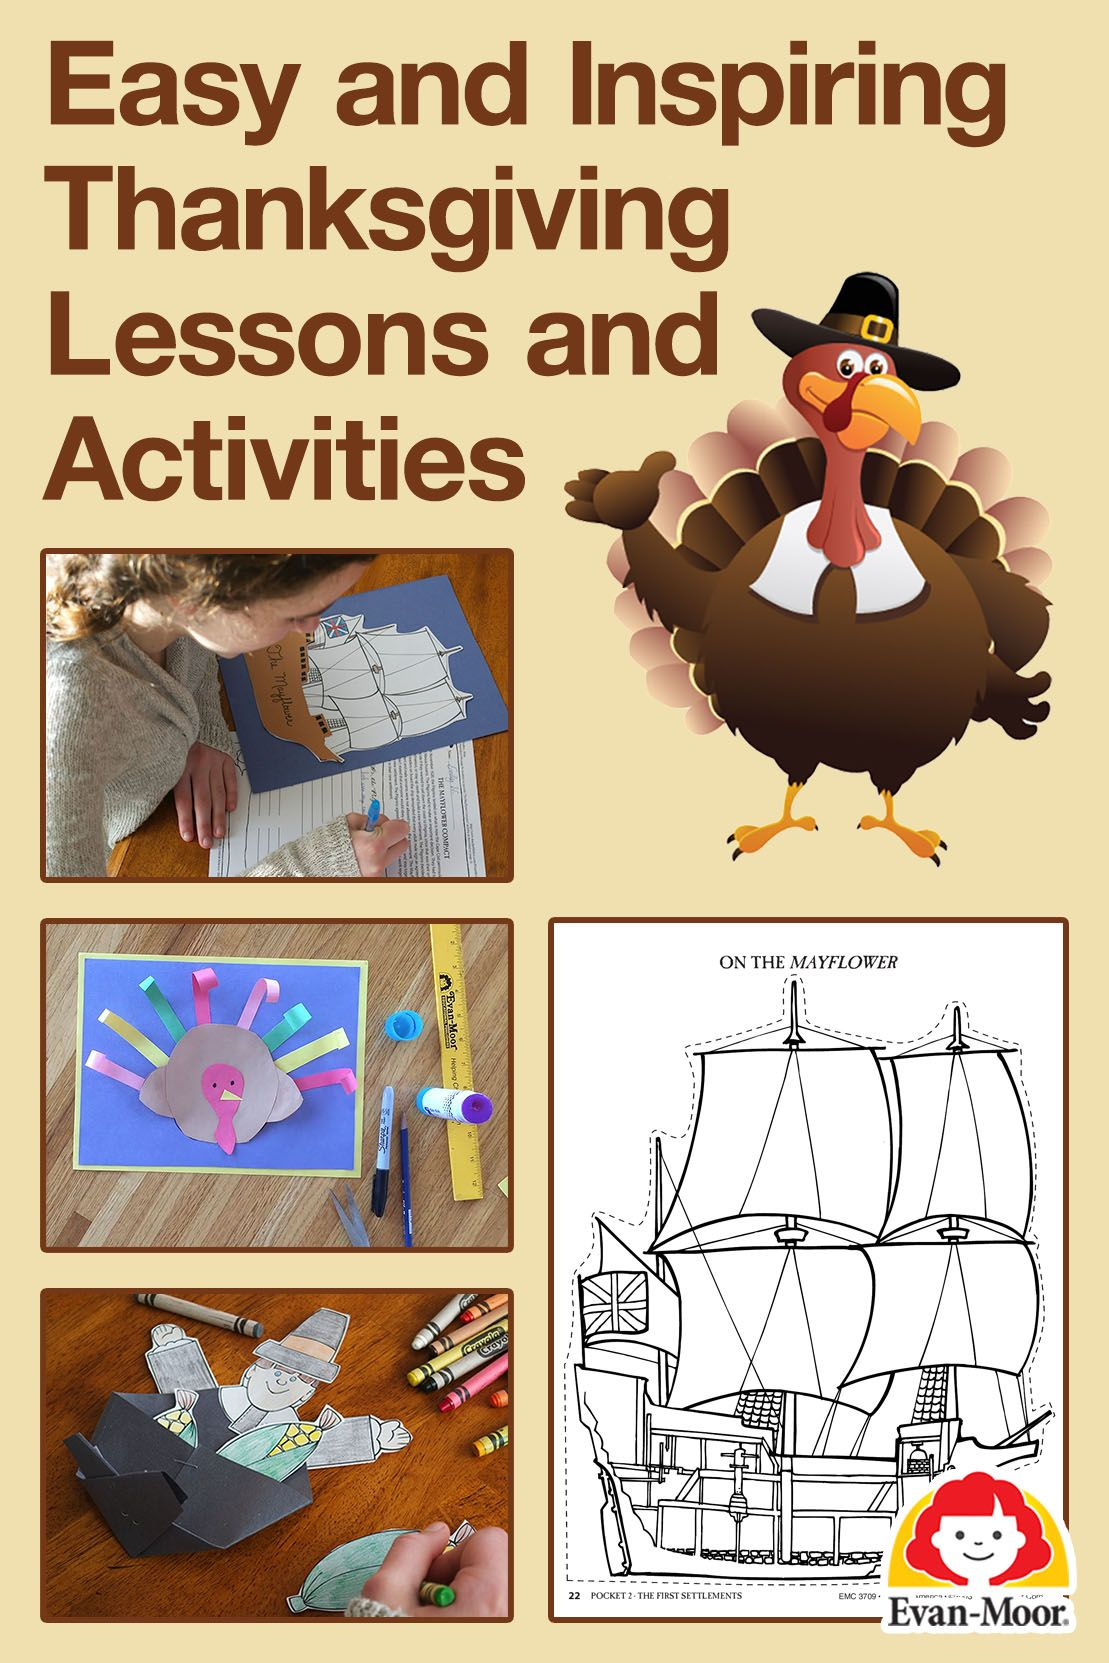 Uncategorized Mayflower Games free thanksgiving lessons on the pilgrims plymouth and mayflower as well turkey crafts games these lessons